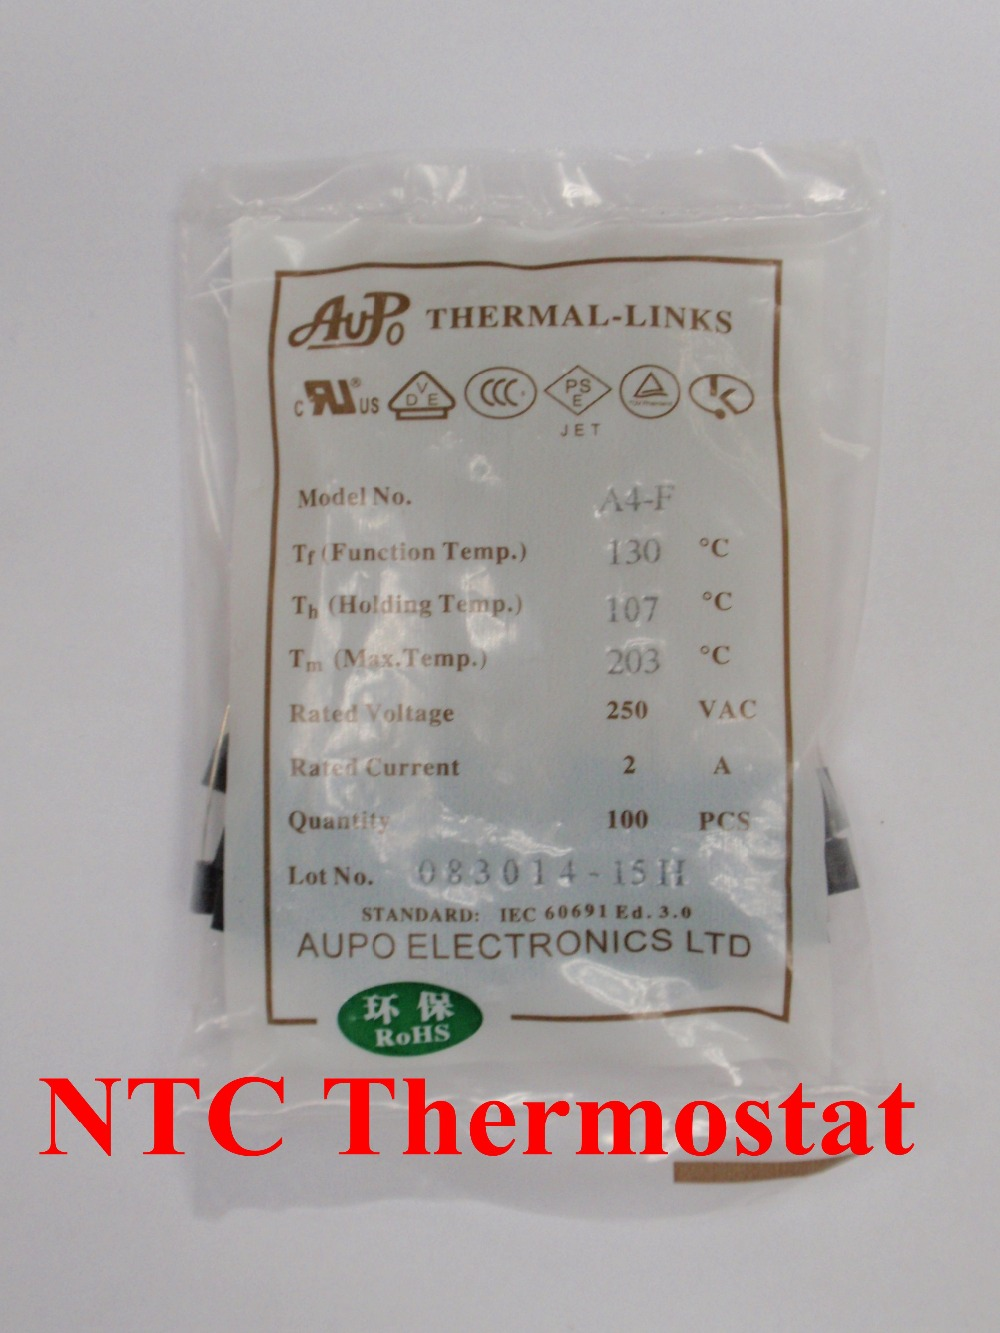 100pcs A4 F 130C 3A 250V degree Thermal Cutoff RH130 Thermal Links Black Square temperature fuse in Fuses from Home Improvement